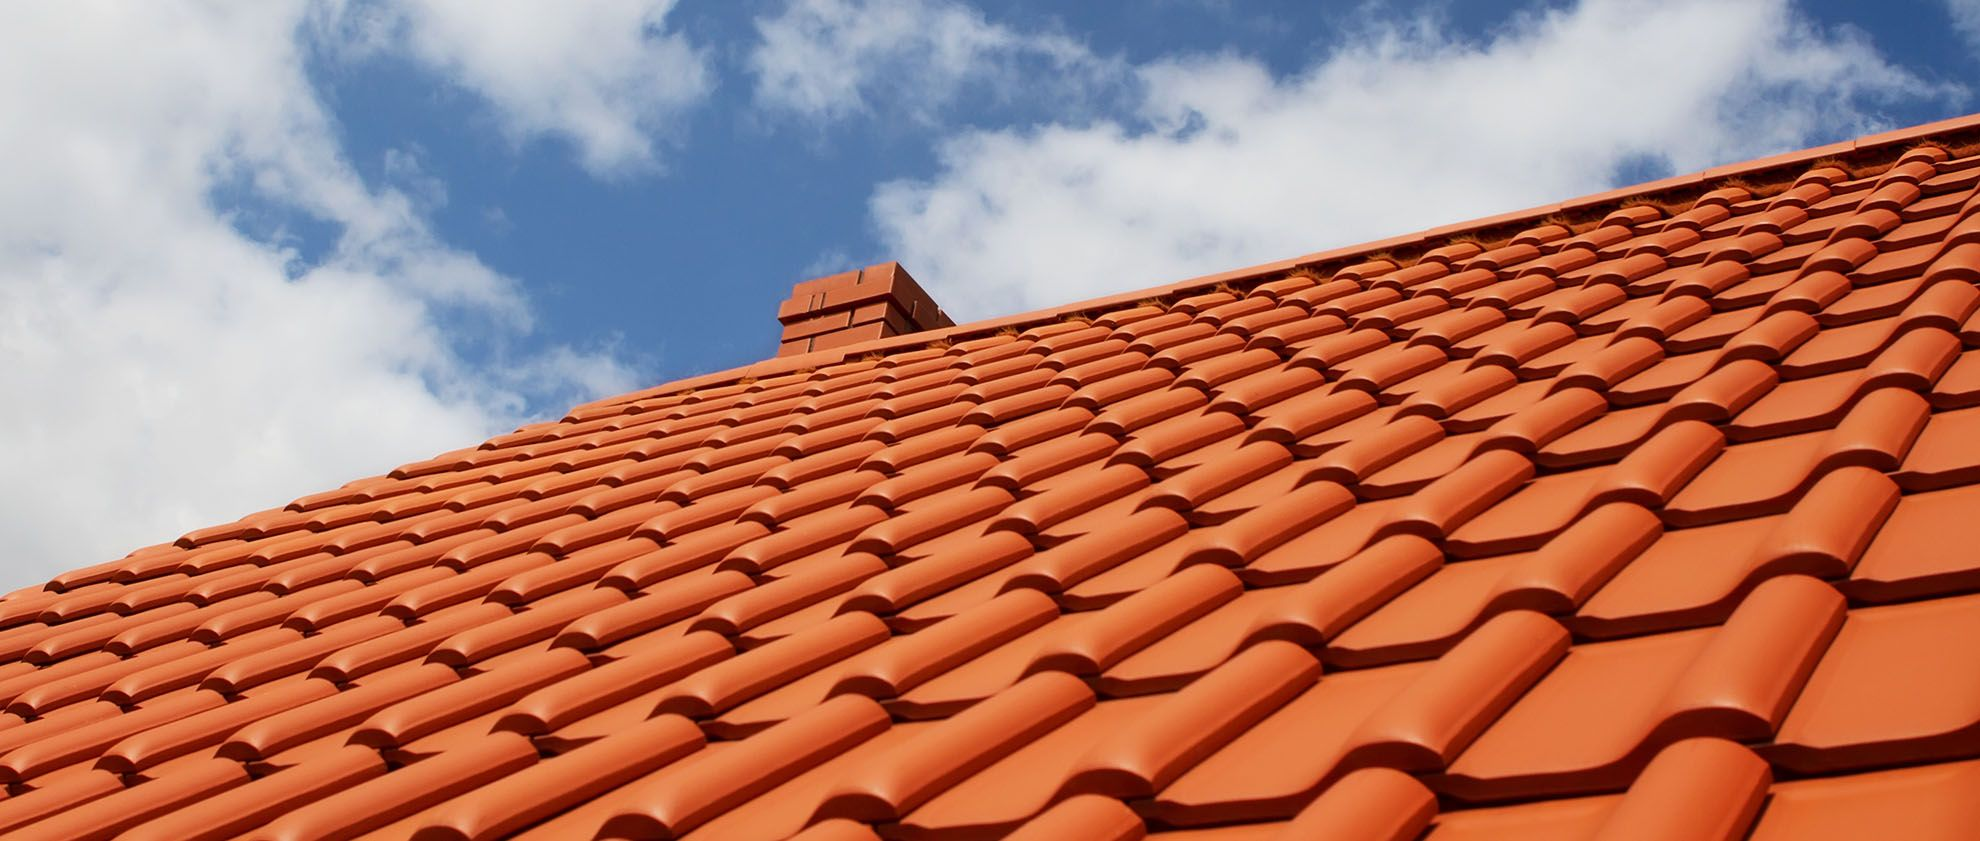 Spanish Tile Roof Repair and Maintenance